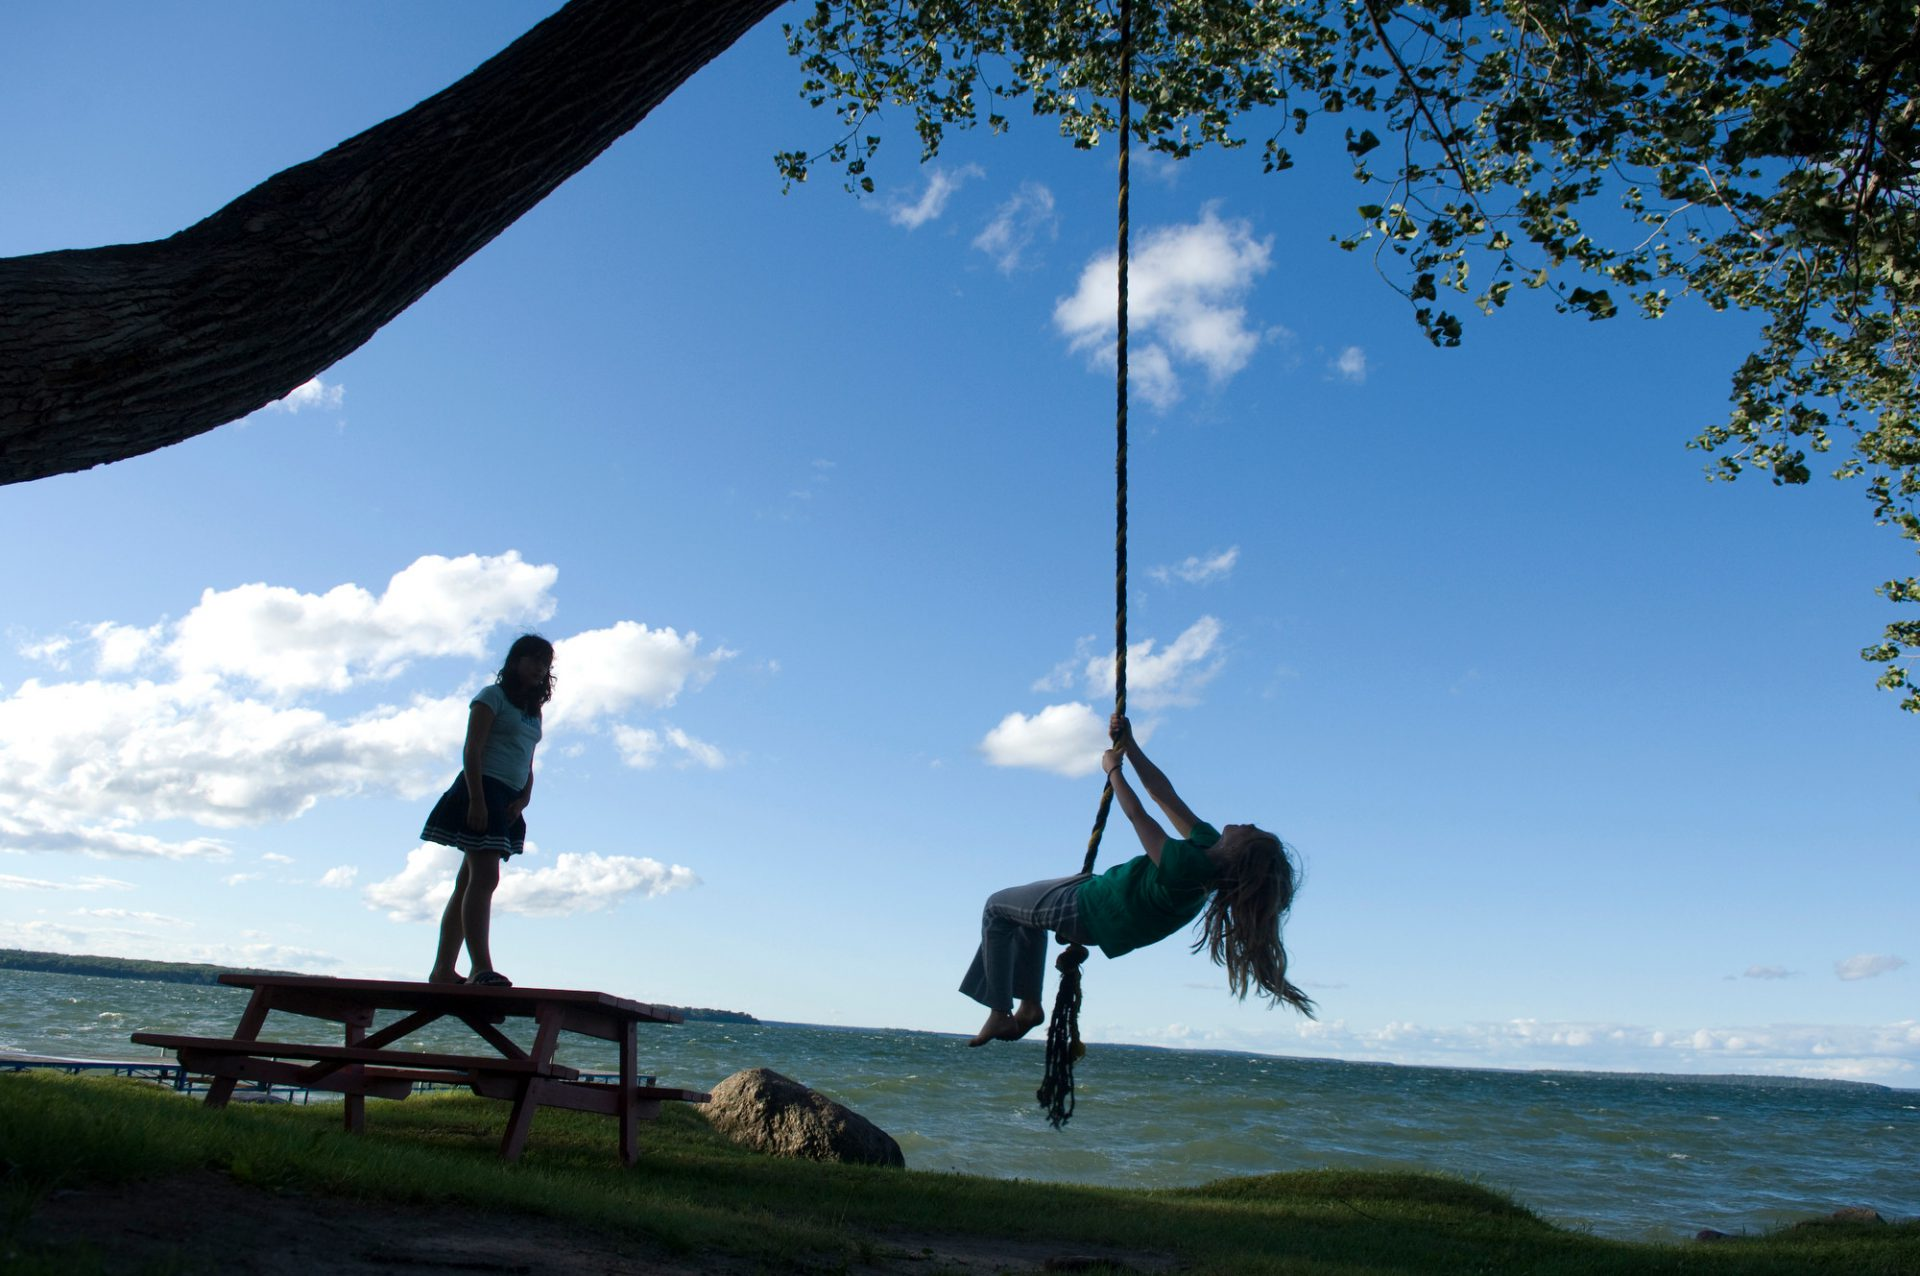 Photo: Two girls play on a rope swing along the shores of Leech Lake, Minnesota.